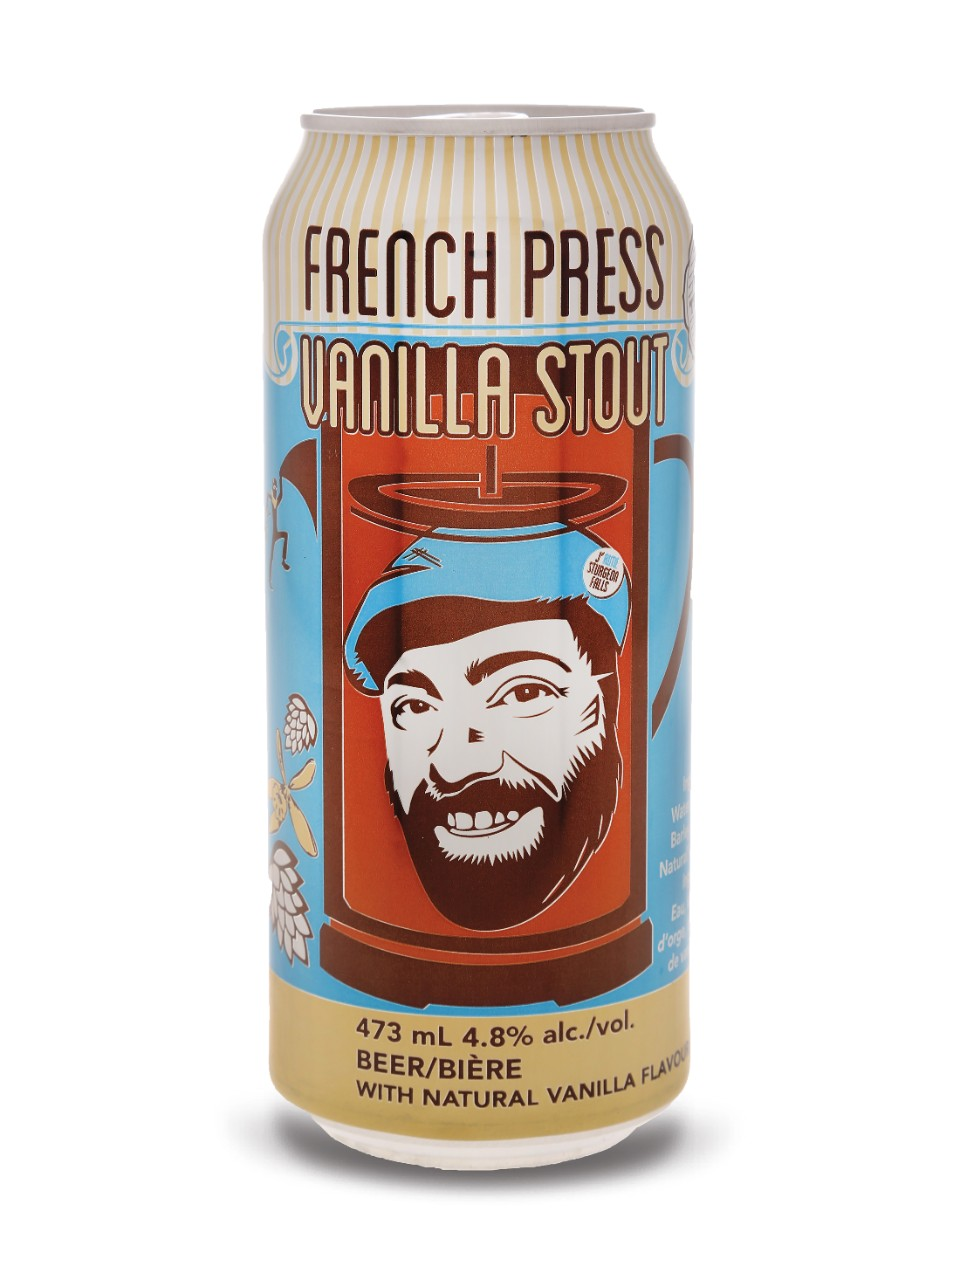 French Press Vanilla Stout